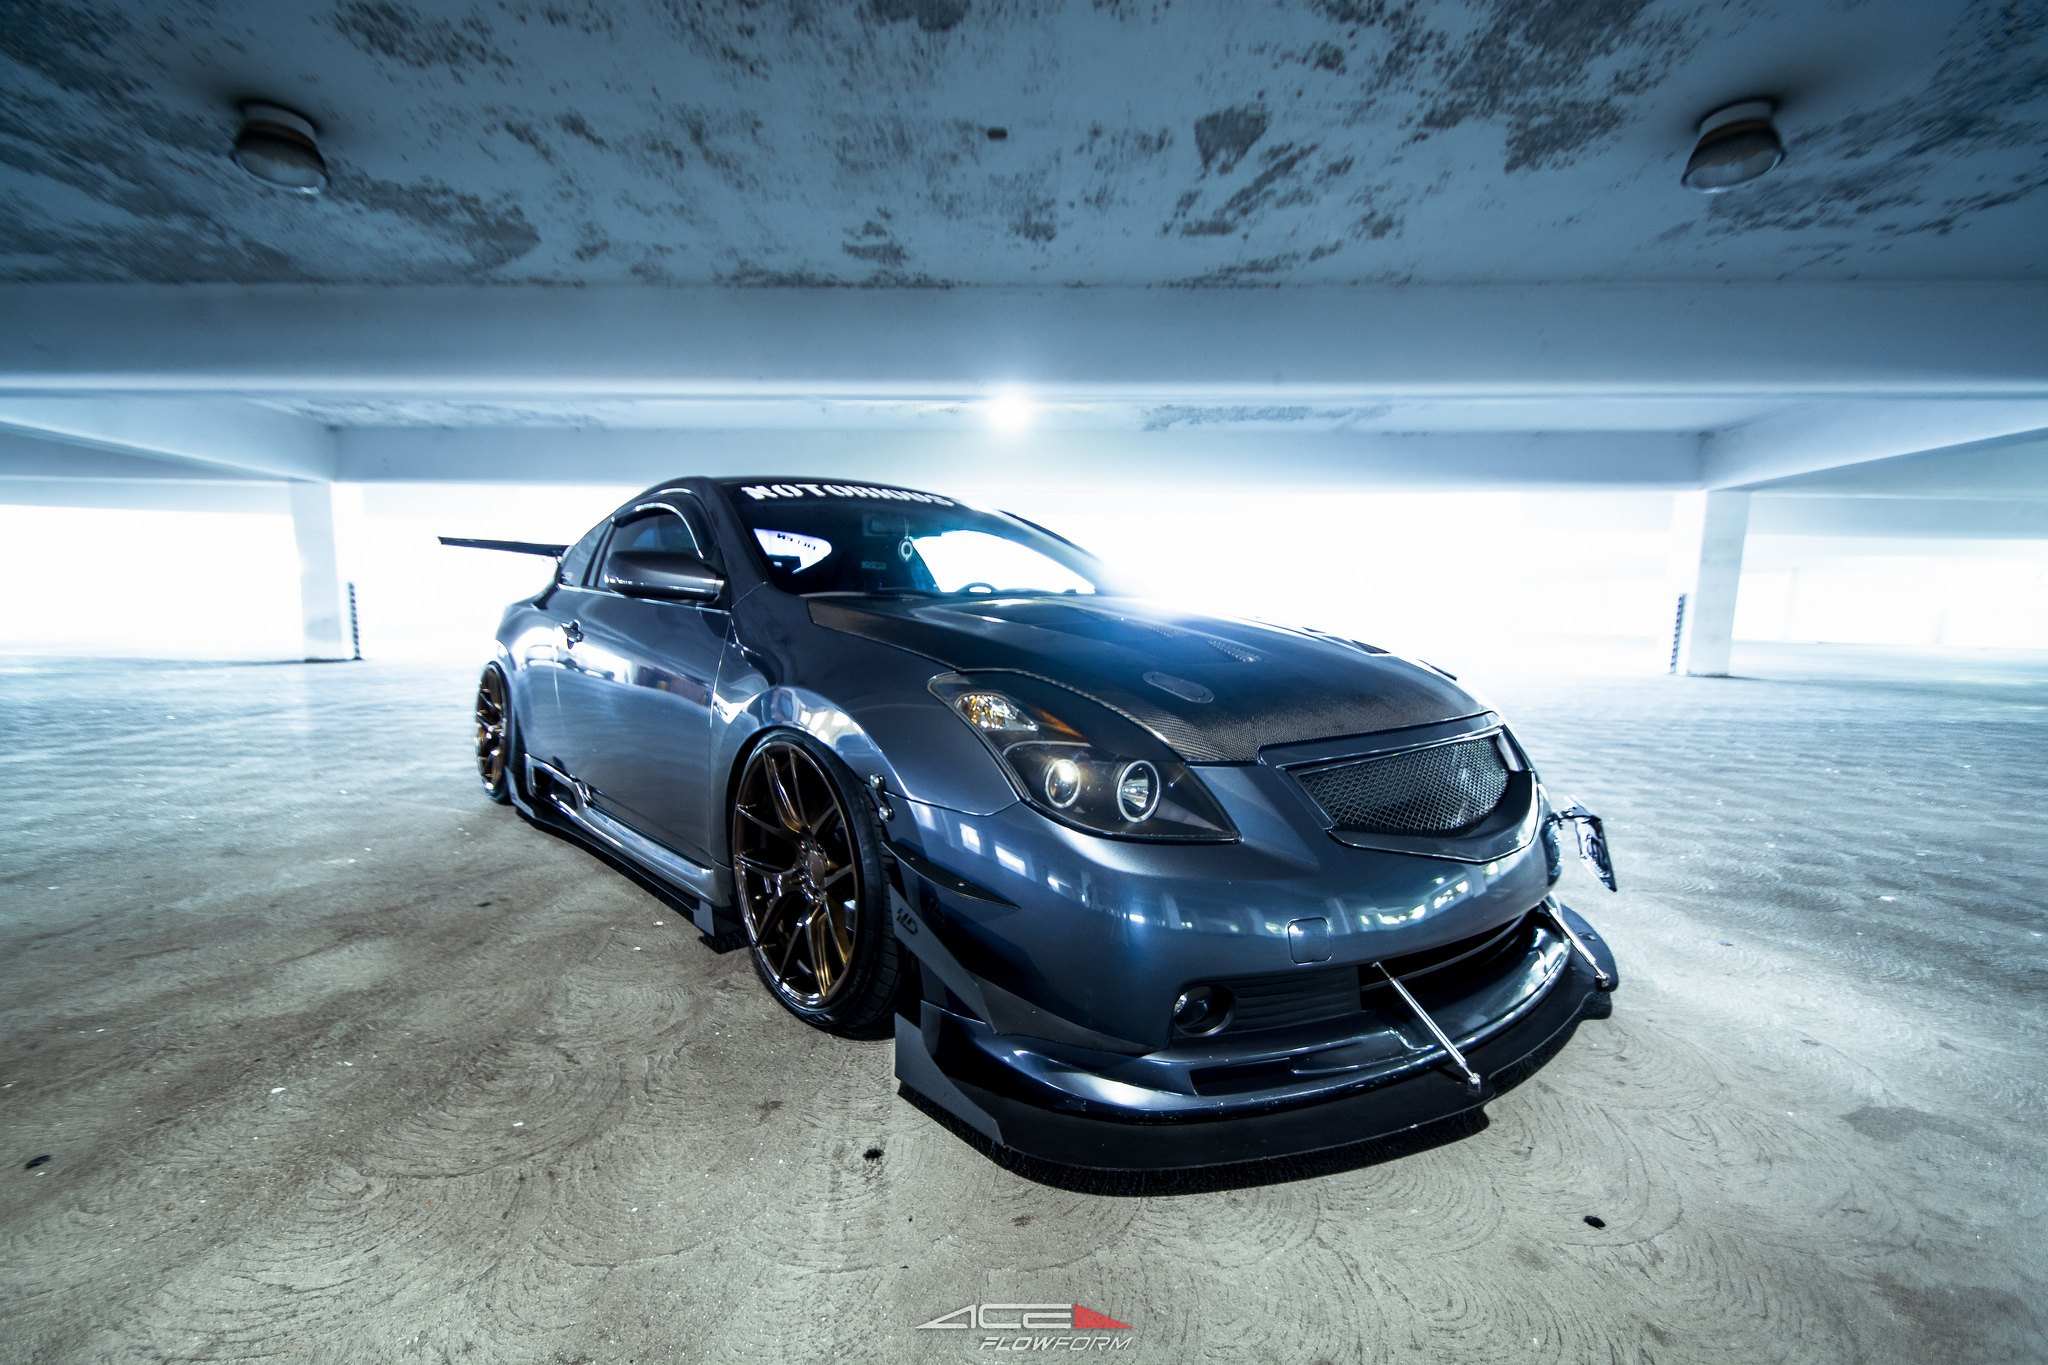 Modified Nissan Altima With Air Suspension And Sport Body Kit   Photo By TSW